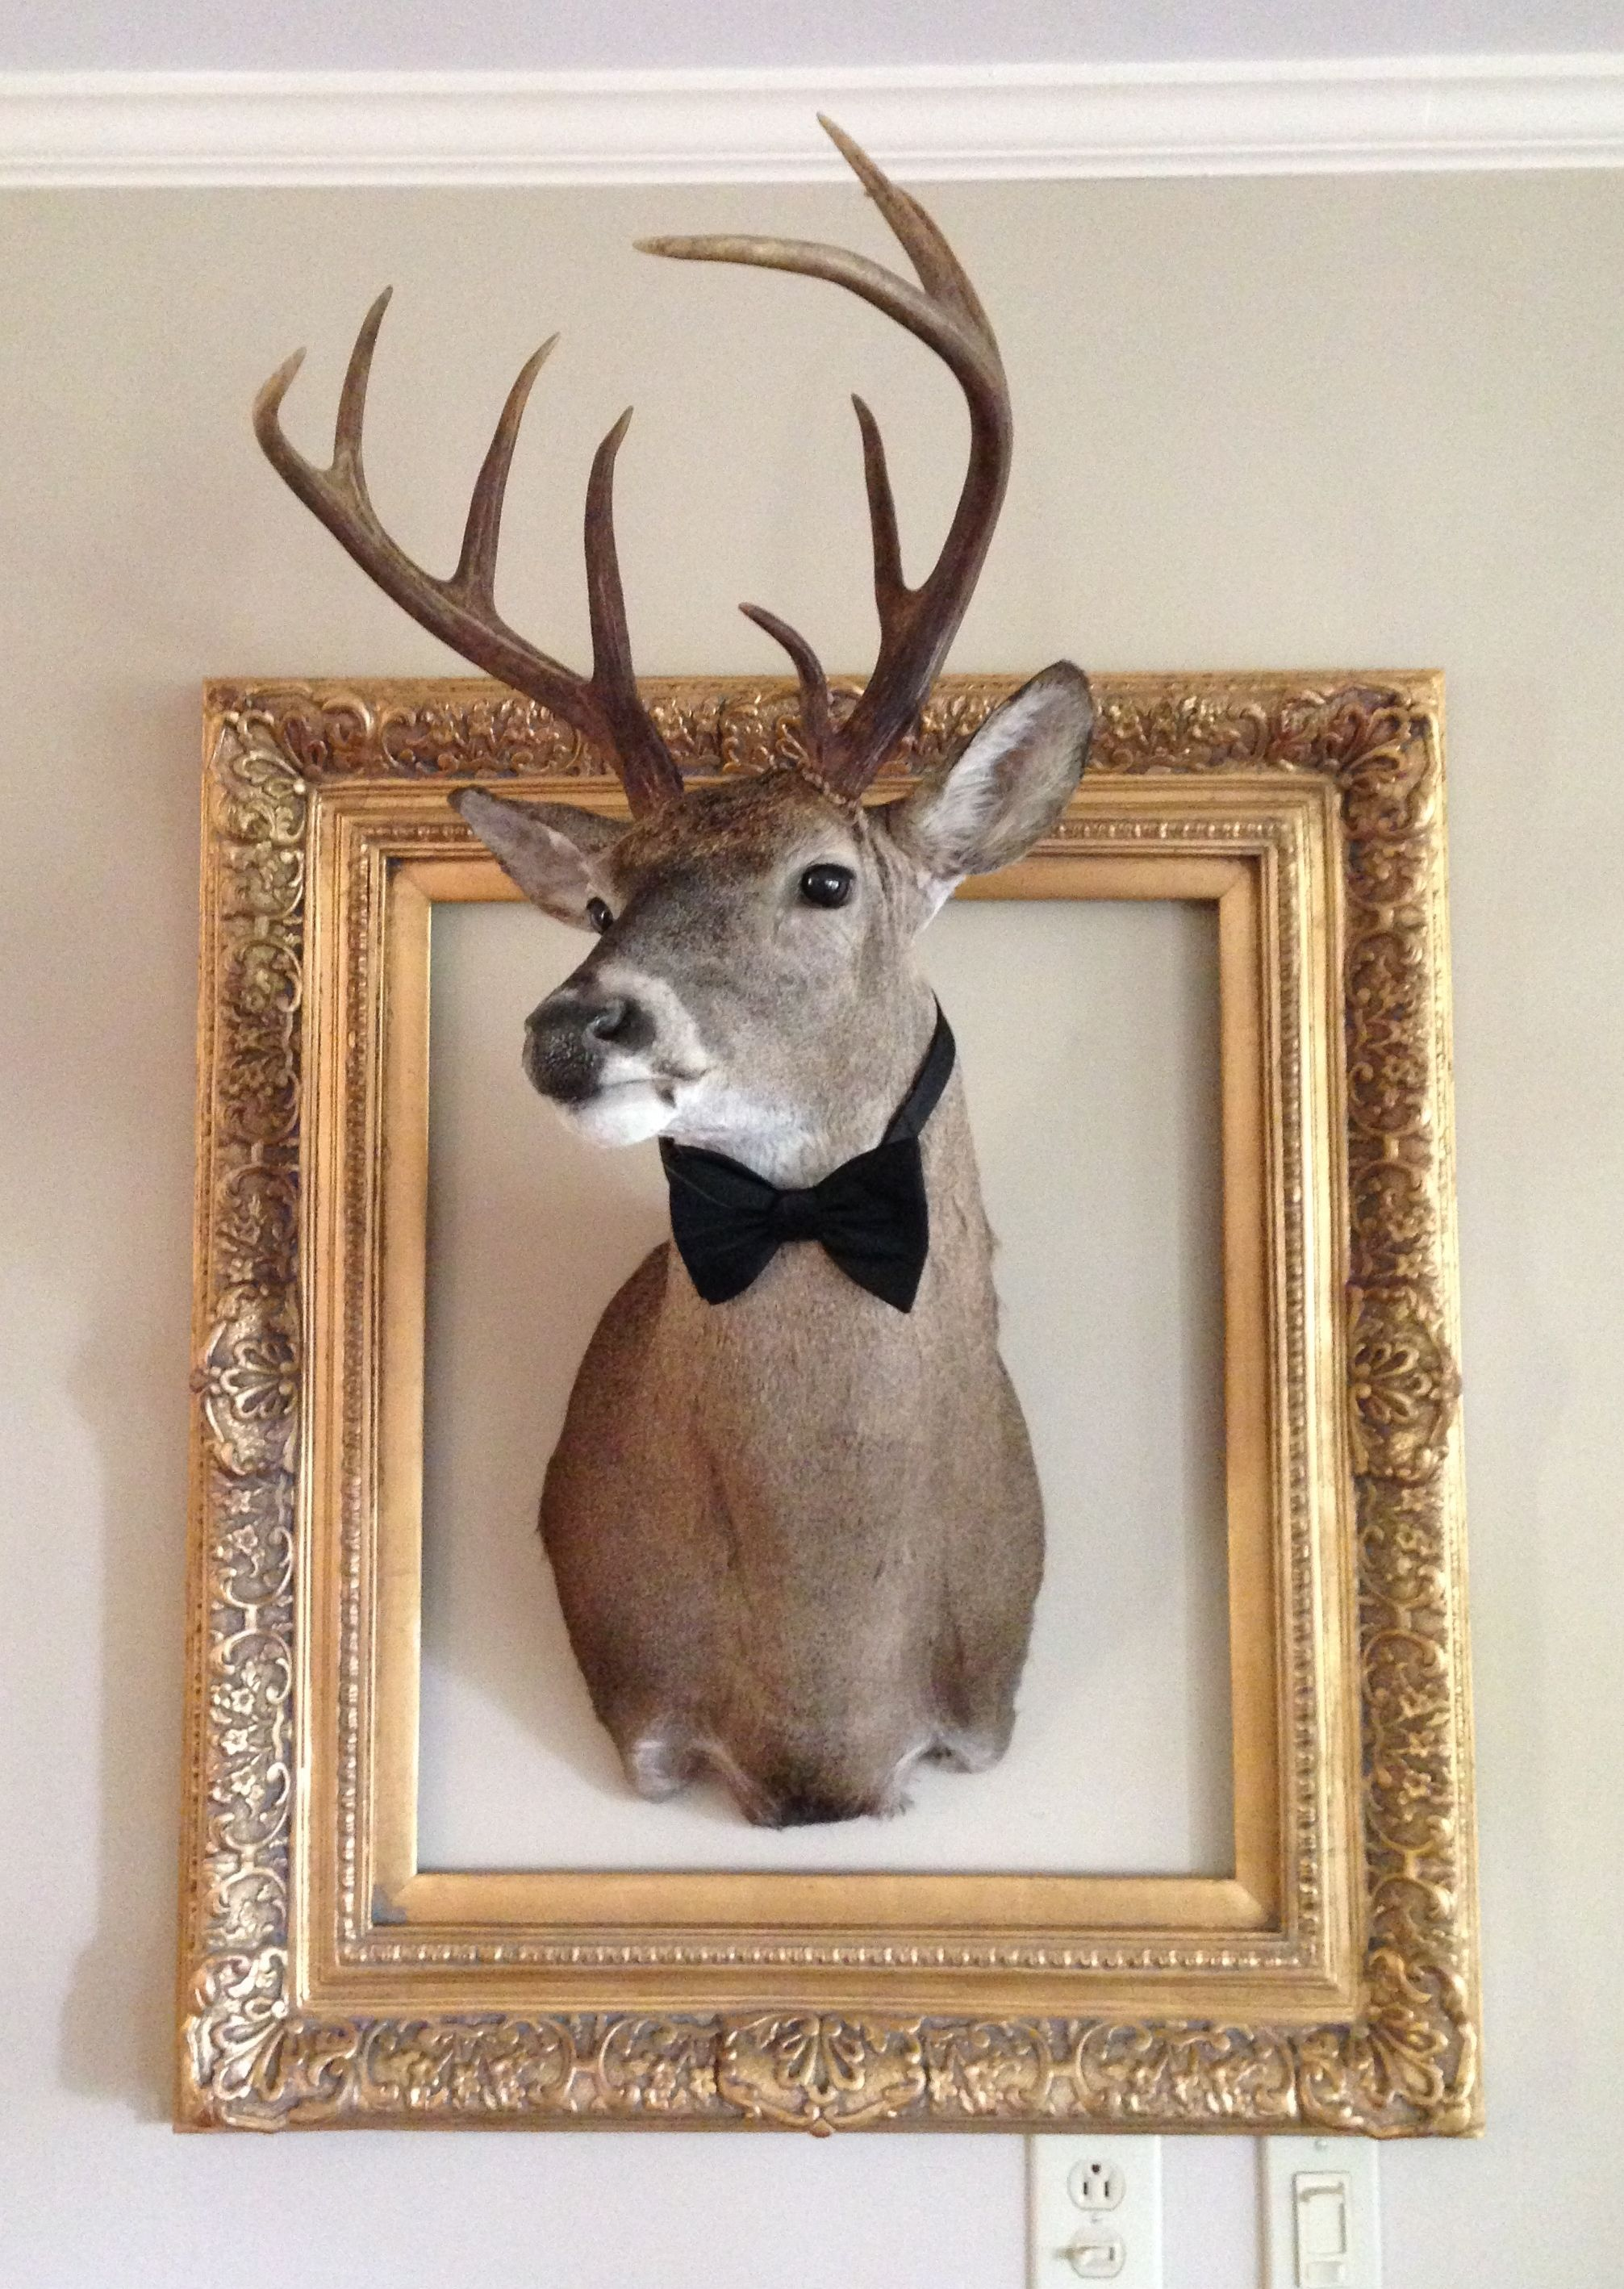 Frame The Deer Head With Gold Frame And Bow Tie Deer Head Decor